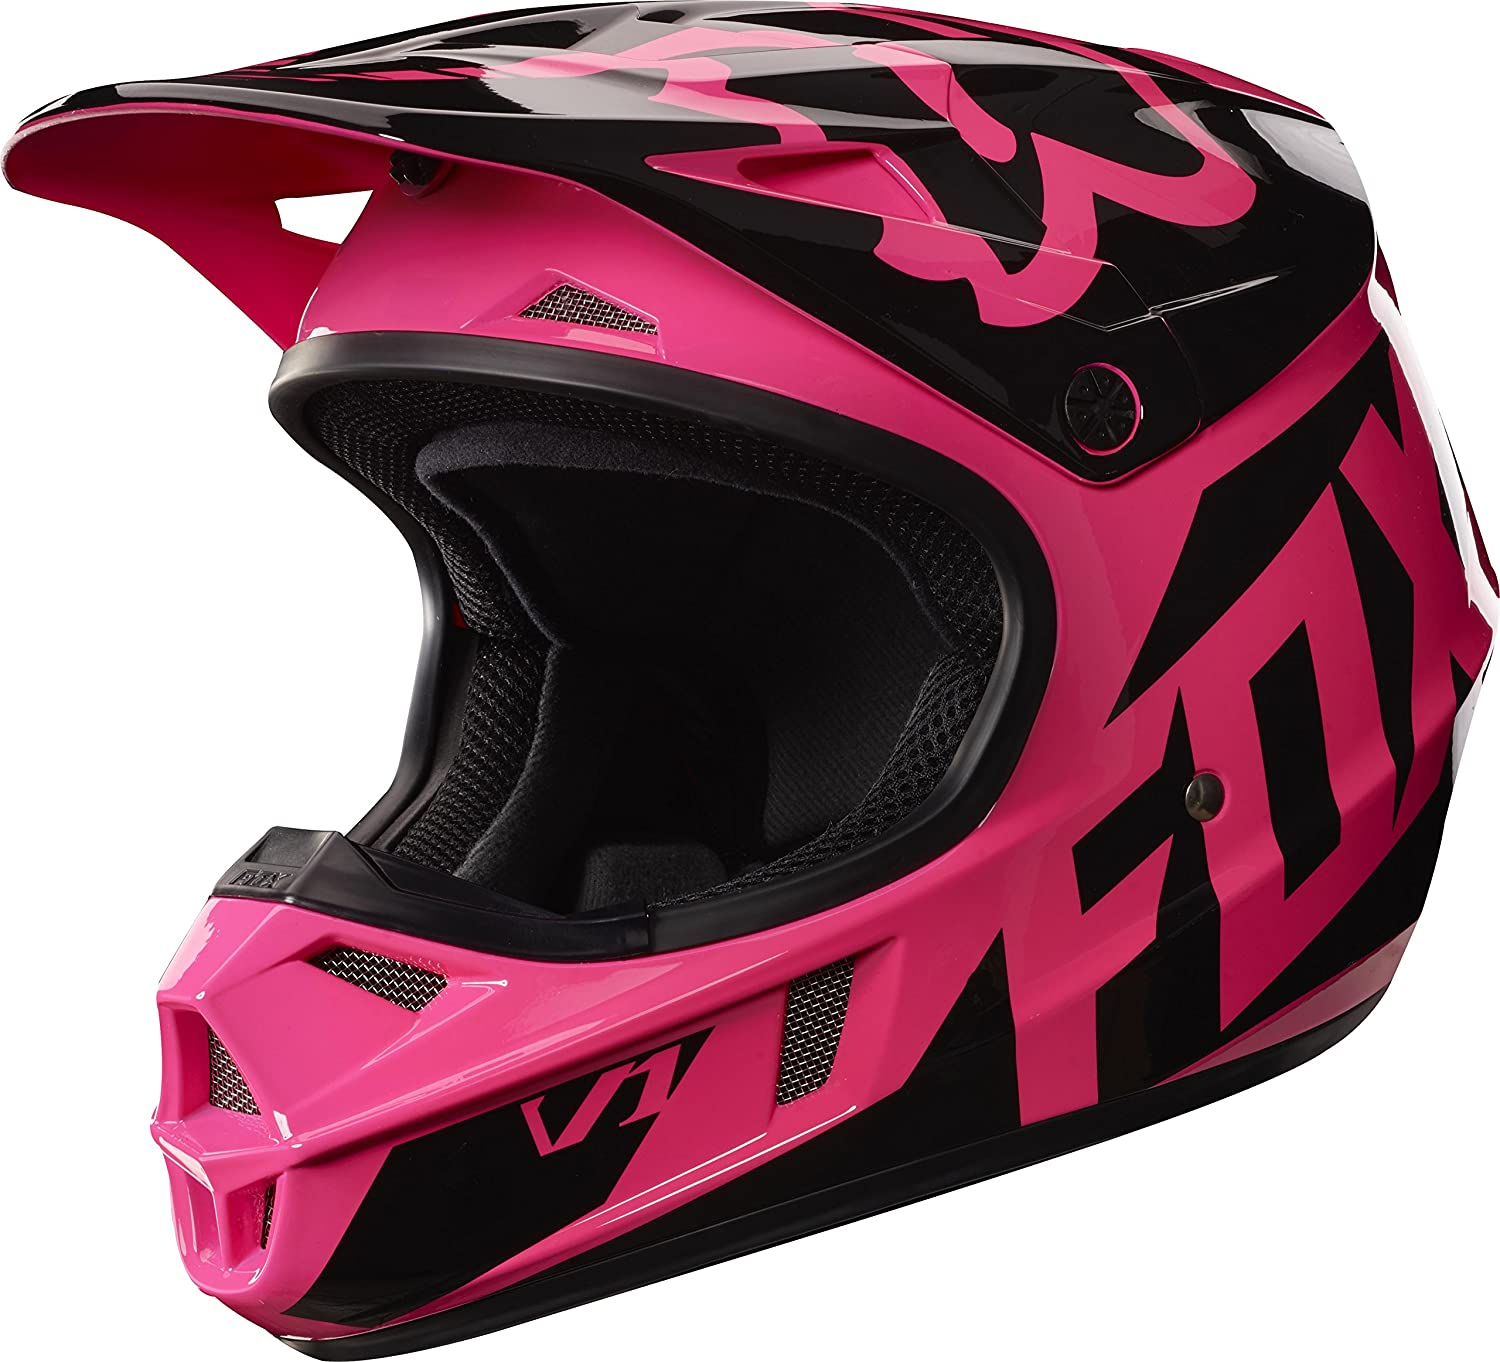 2017 Fox Racing Youth V1 Girls Race Helmet-YS COMINU056804